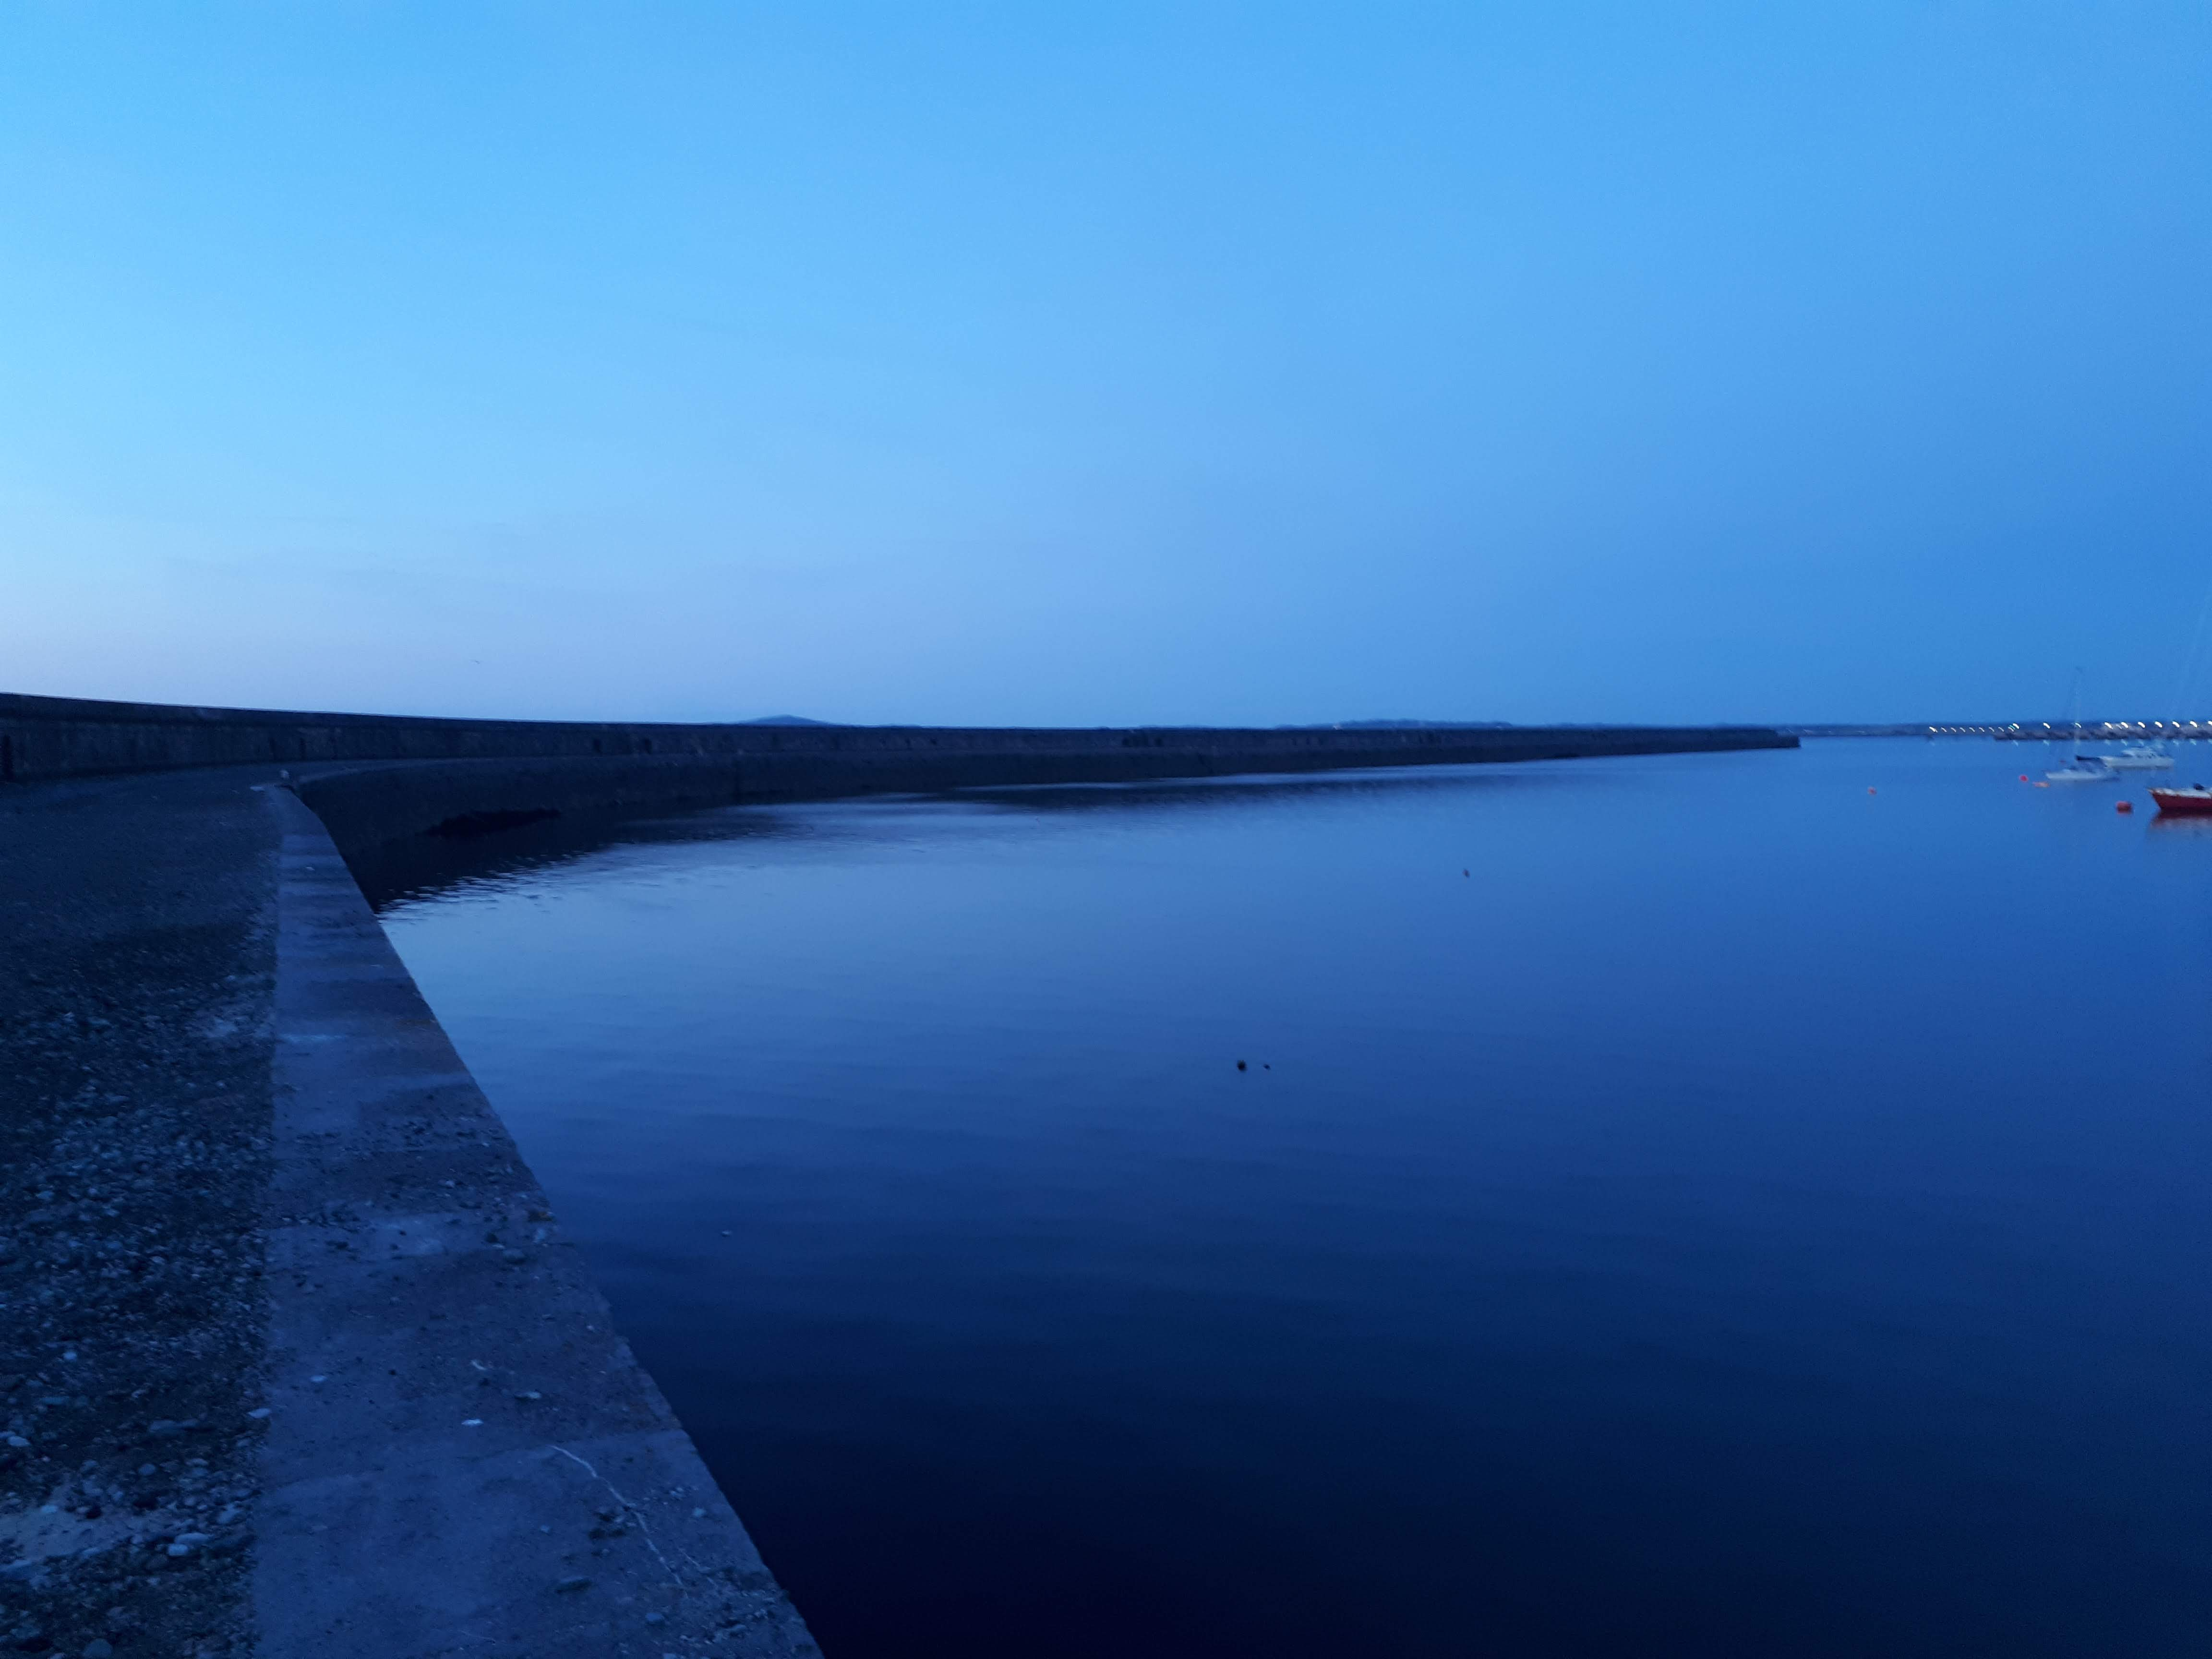 a picture of the breakwater at dusk